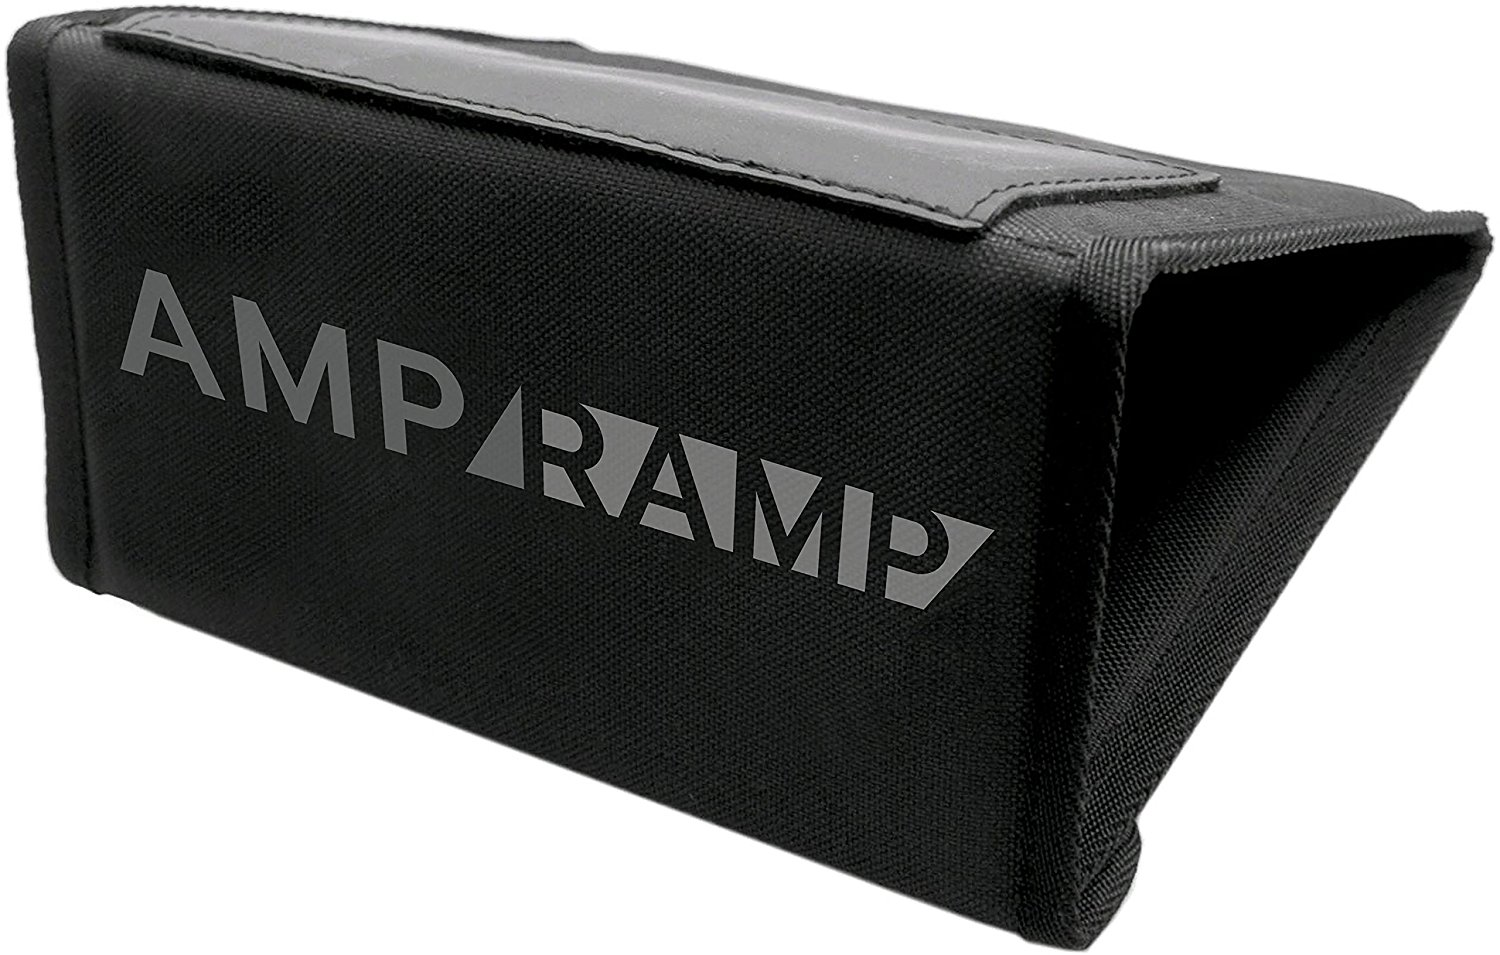 Outlaw Amp Ramp